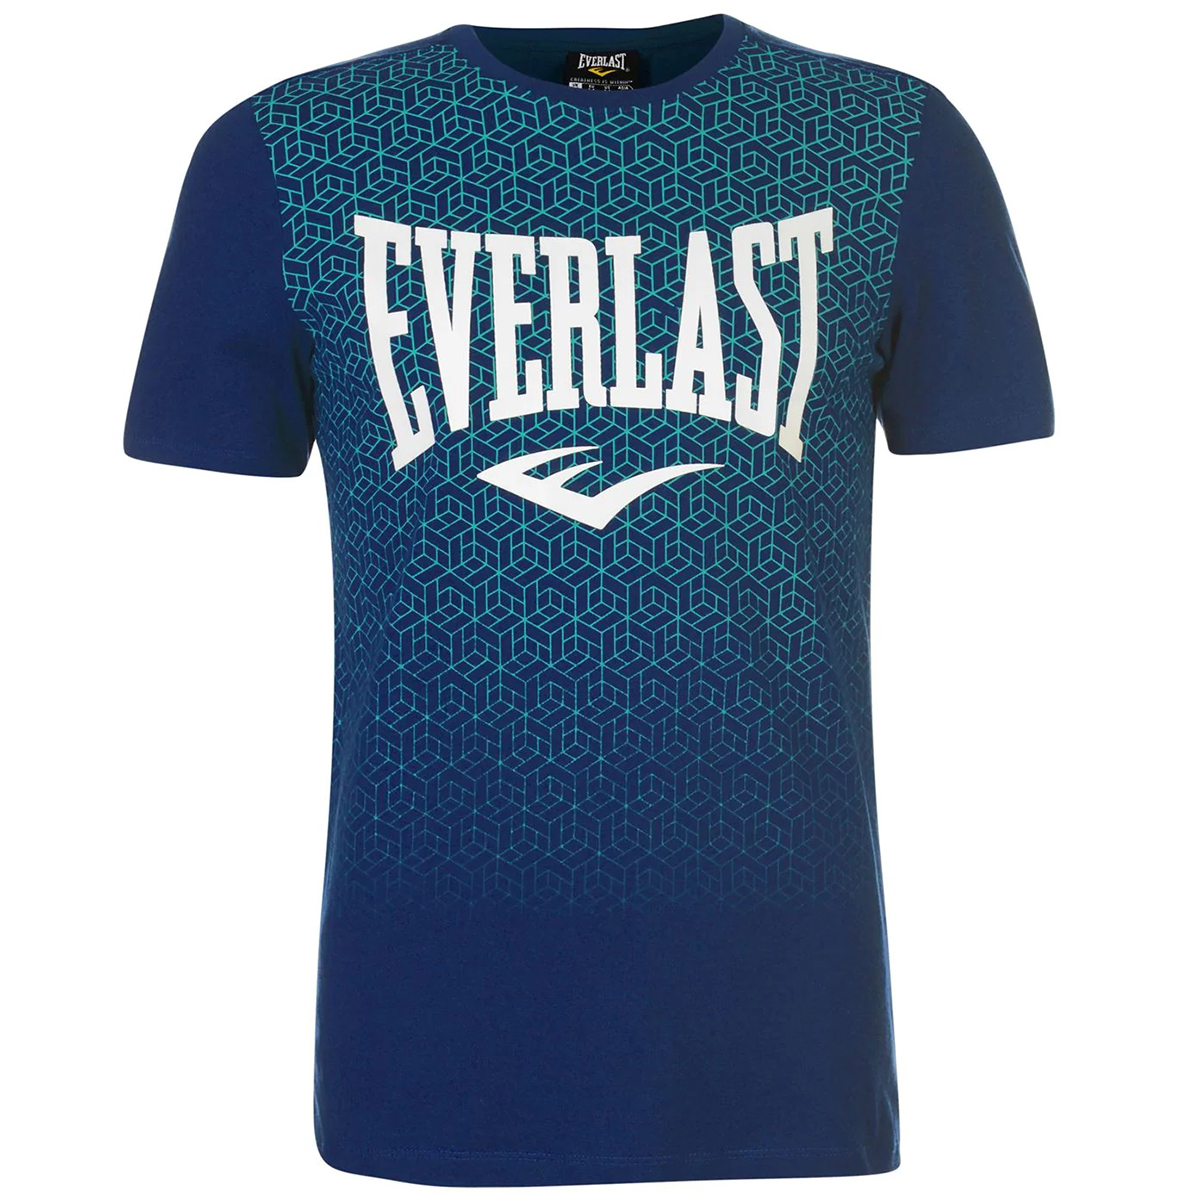 Everlast Men's Geo Print Short-Sleeve Tee - Blue, XS